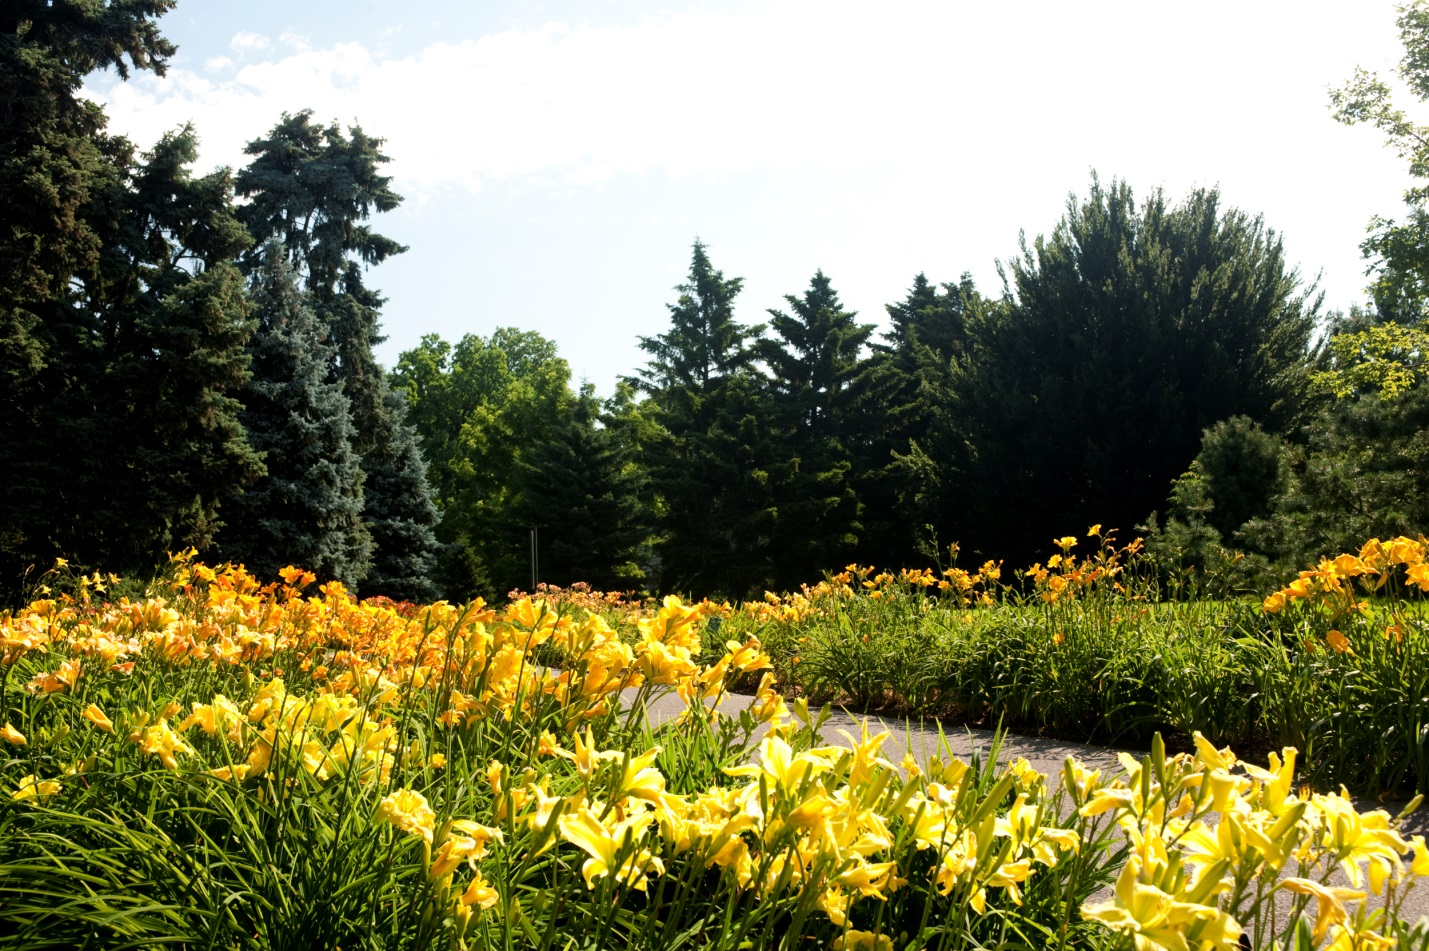 Yellow and orange daylilies alongside path with trees beyond